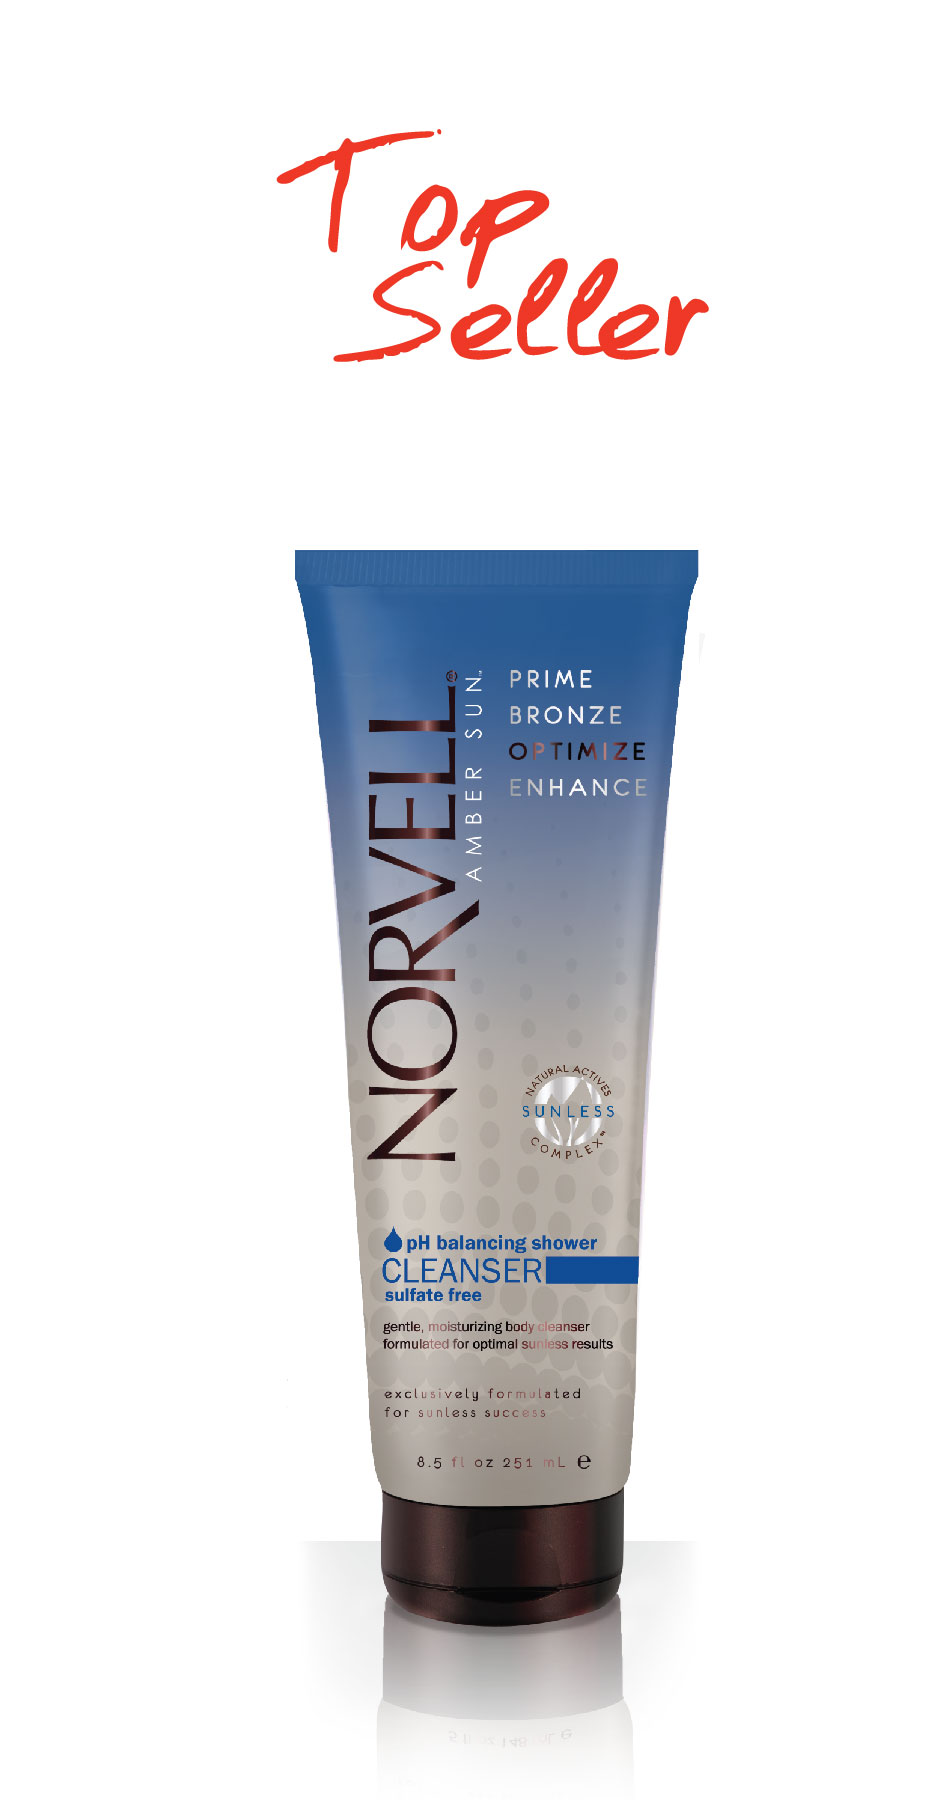 PH BALANCING SHOWER CLEANSER SULFATE FREE